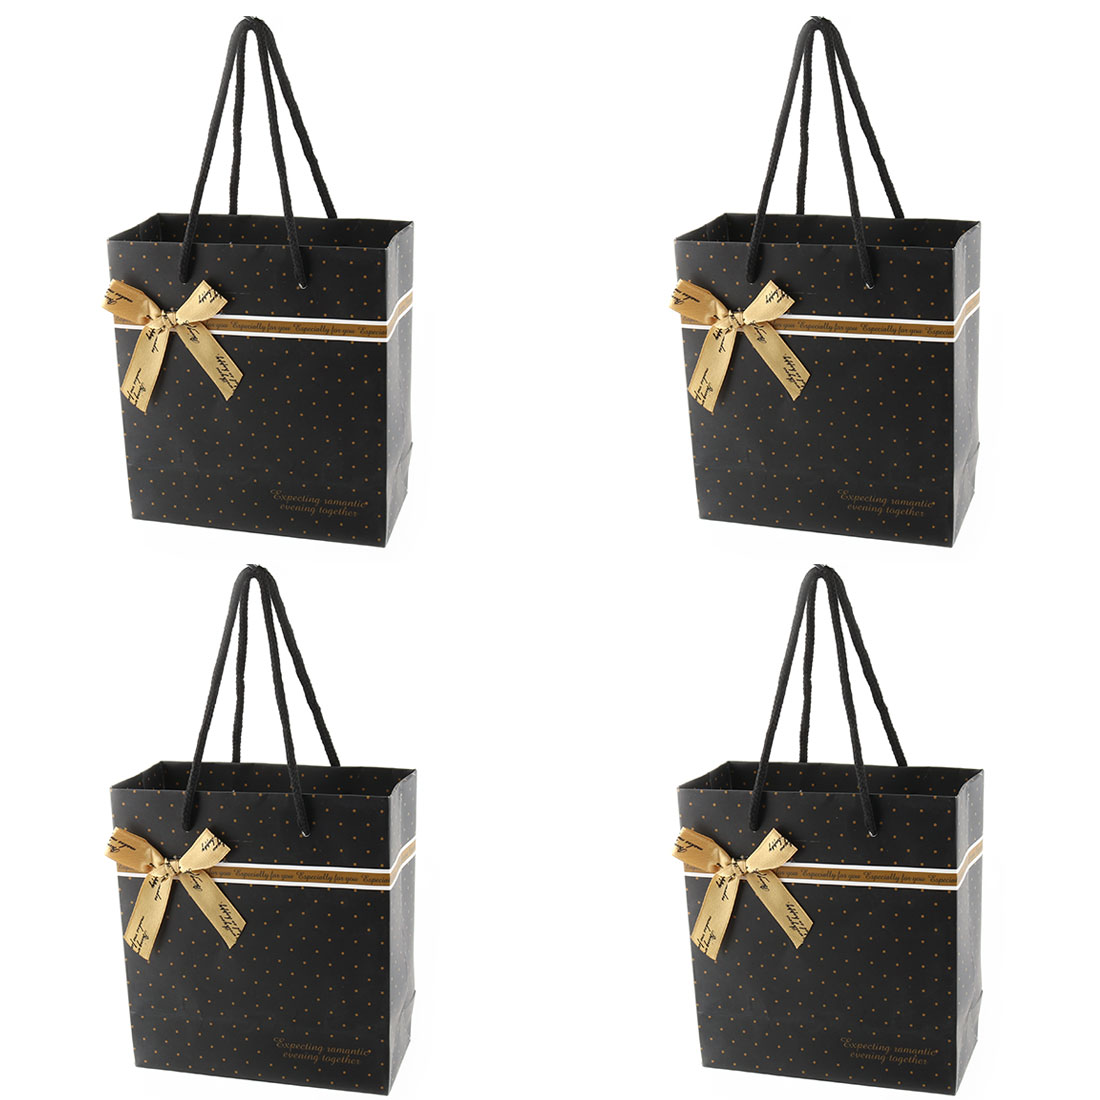 Holiday Paper Spots Pattern Bowknot Decor Birthday Wedding Gift Bag Black 4 Pcs